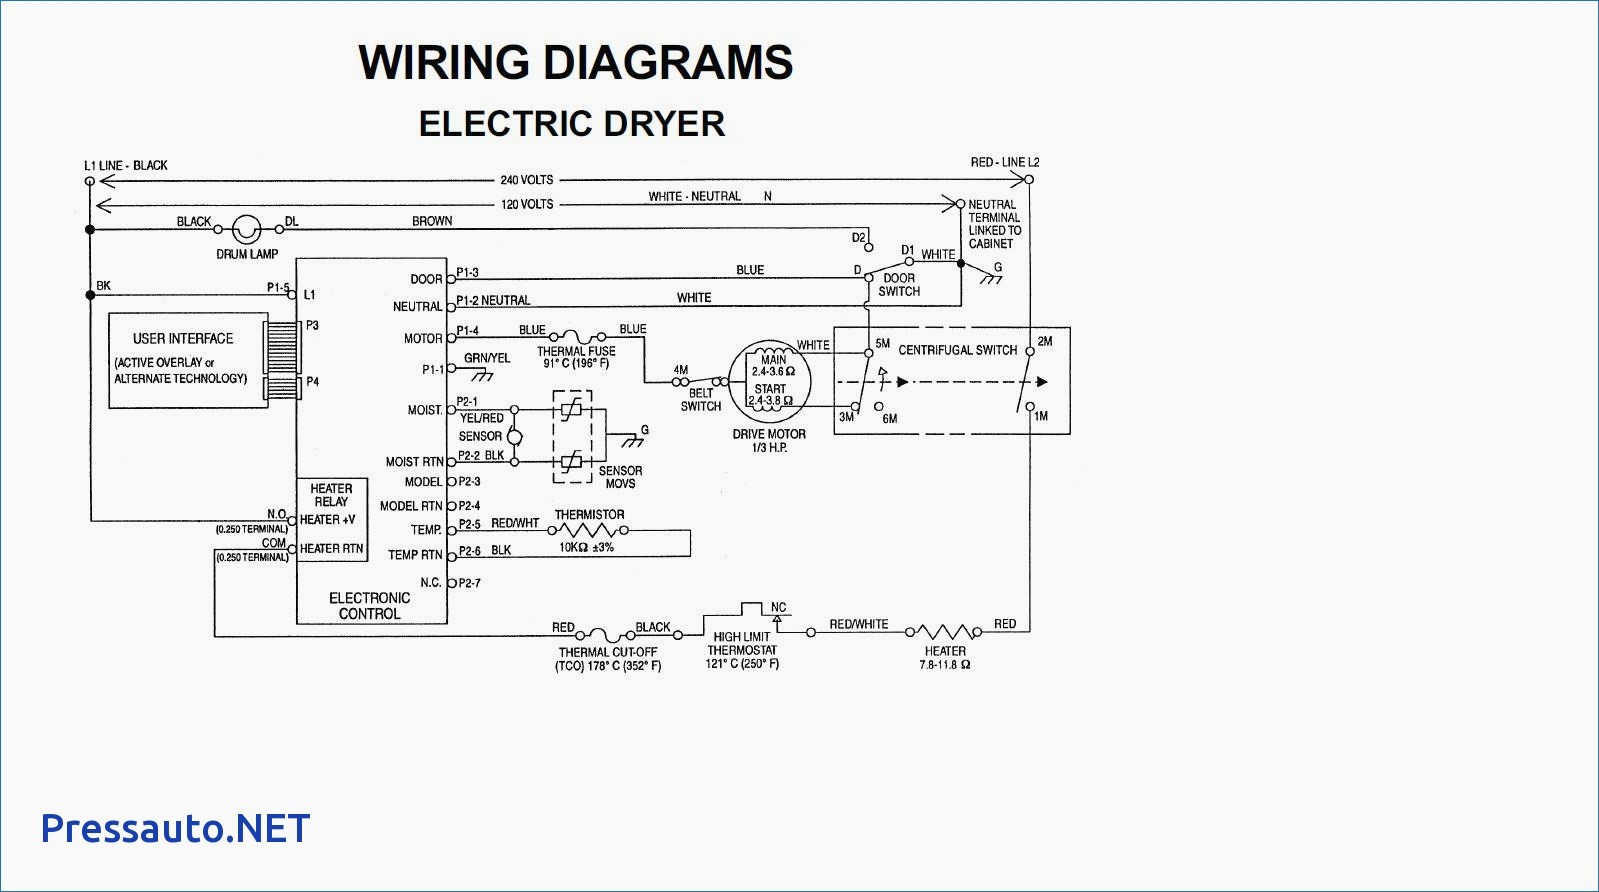 Whirlpool Dryer Electrical Schematic Diagrams 3ce2910xsw1 Wiring Diagram Auto Duet Electric Beautiful